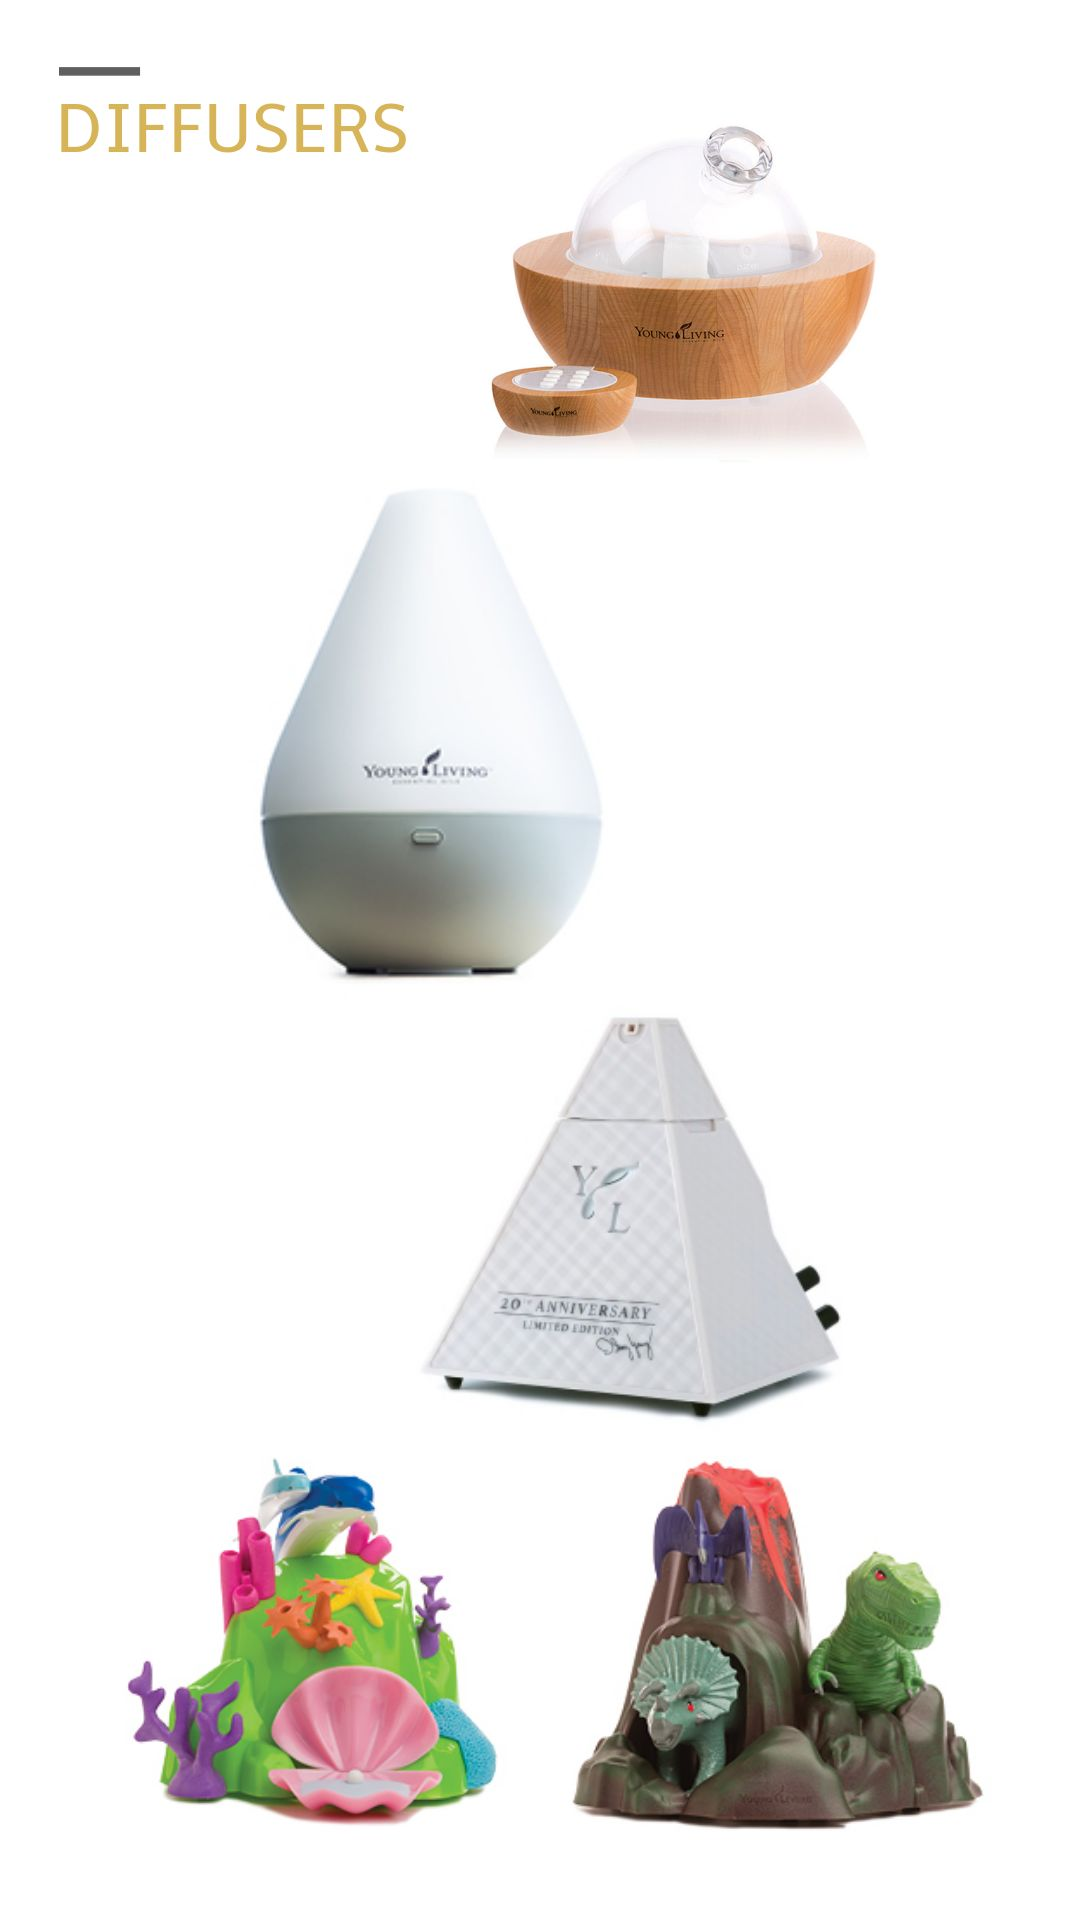 #9C402F Diffusers For Essential Oils Essential Oils Kuching Best 3783 Home Diffusers For Essential Oils photos with 1080x1920 px on helpvideos.info - Air Conditioners, Air Coolers and more